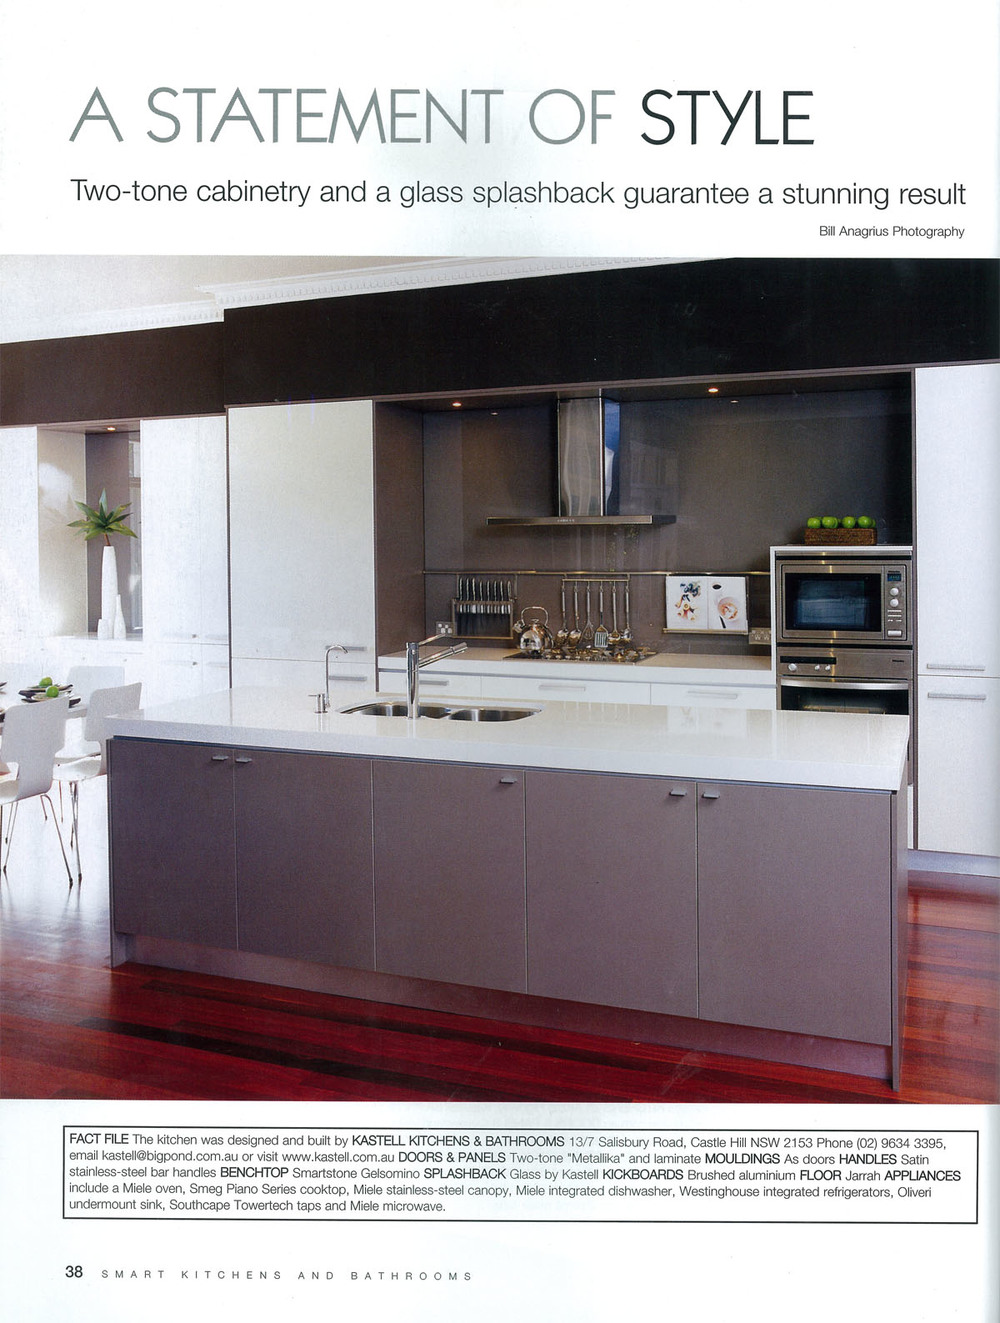 Lynne Bradley Interiors featured in Smart Kitchens & Bathrooms